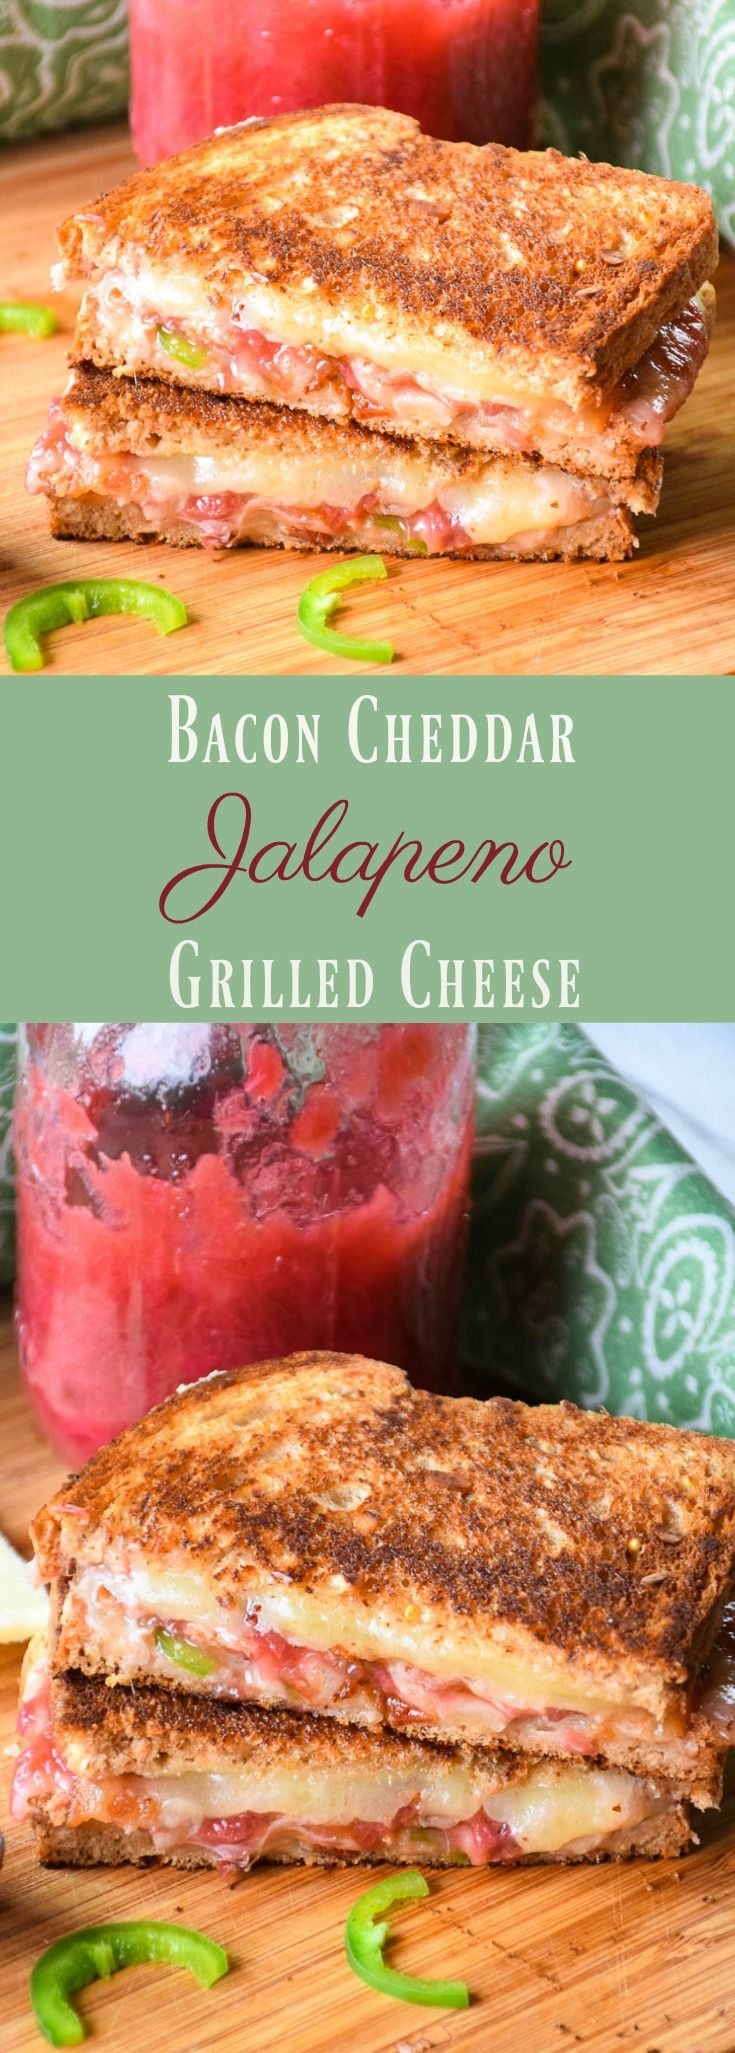 Rhubarb sauce, jalapenos, Cabot Sharp Cheddar, and salty crispy bacon contribute an amazing combination of flavors in Bacon Cheddar Jalapeno Grilled Cheese! #spon #DairyMonth